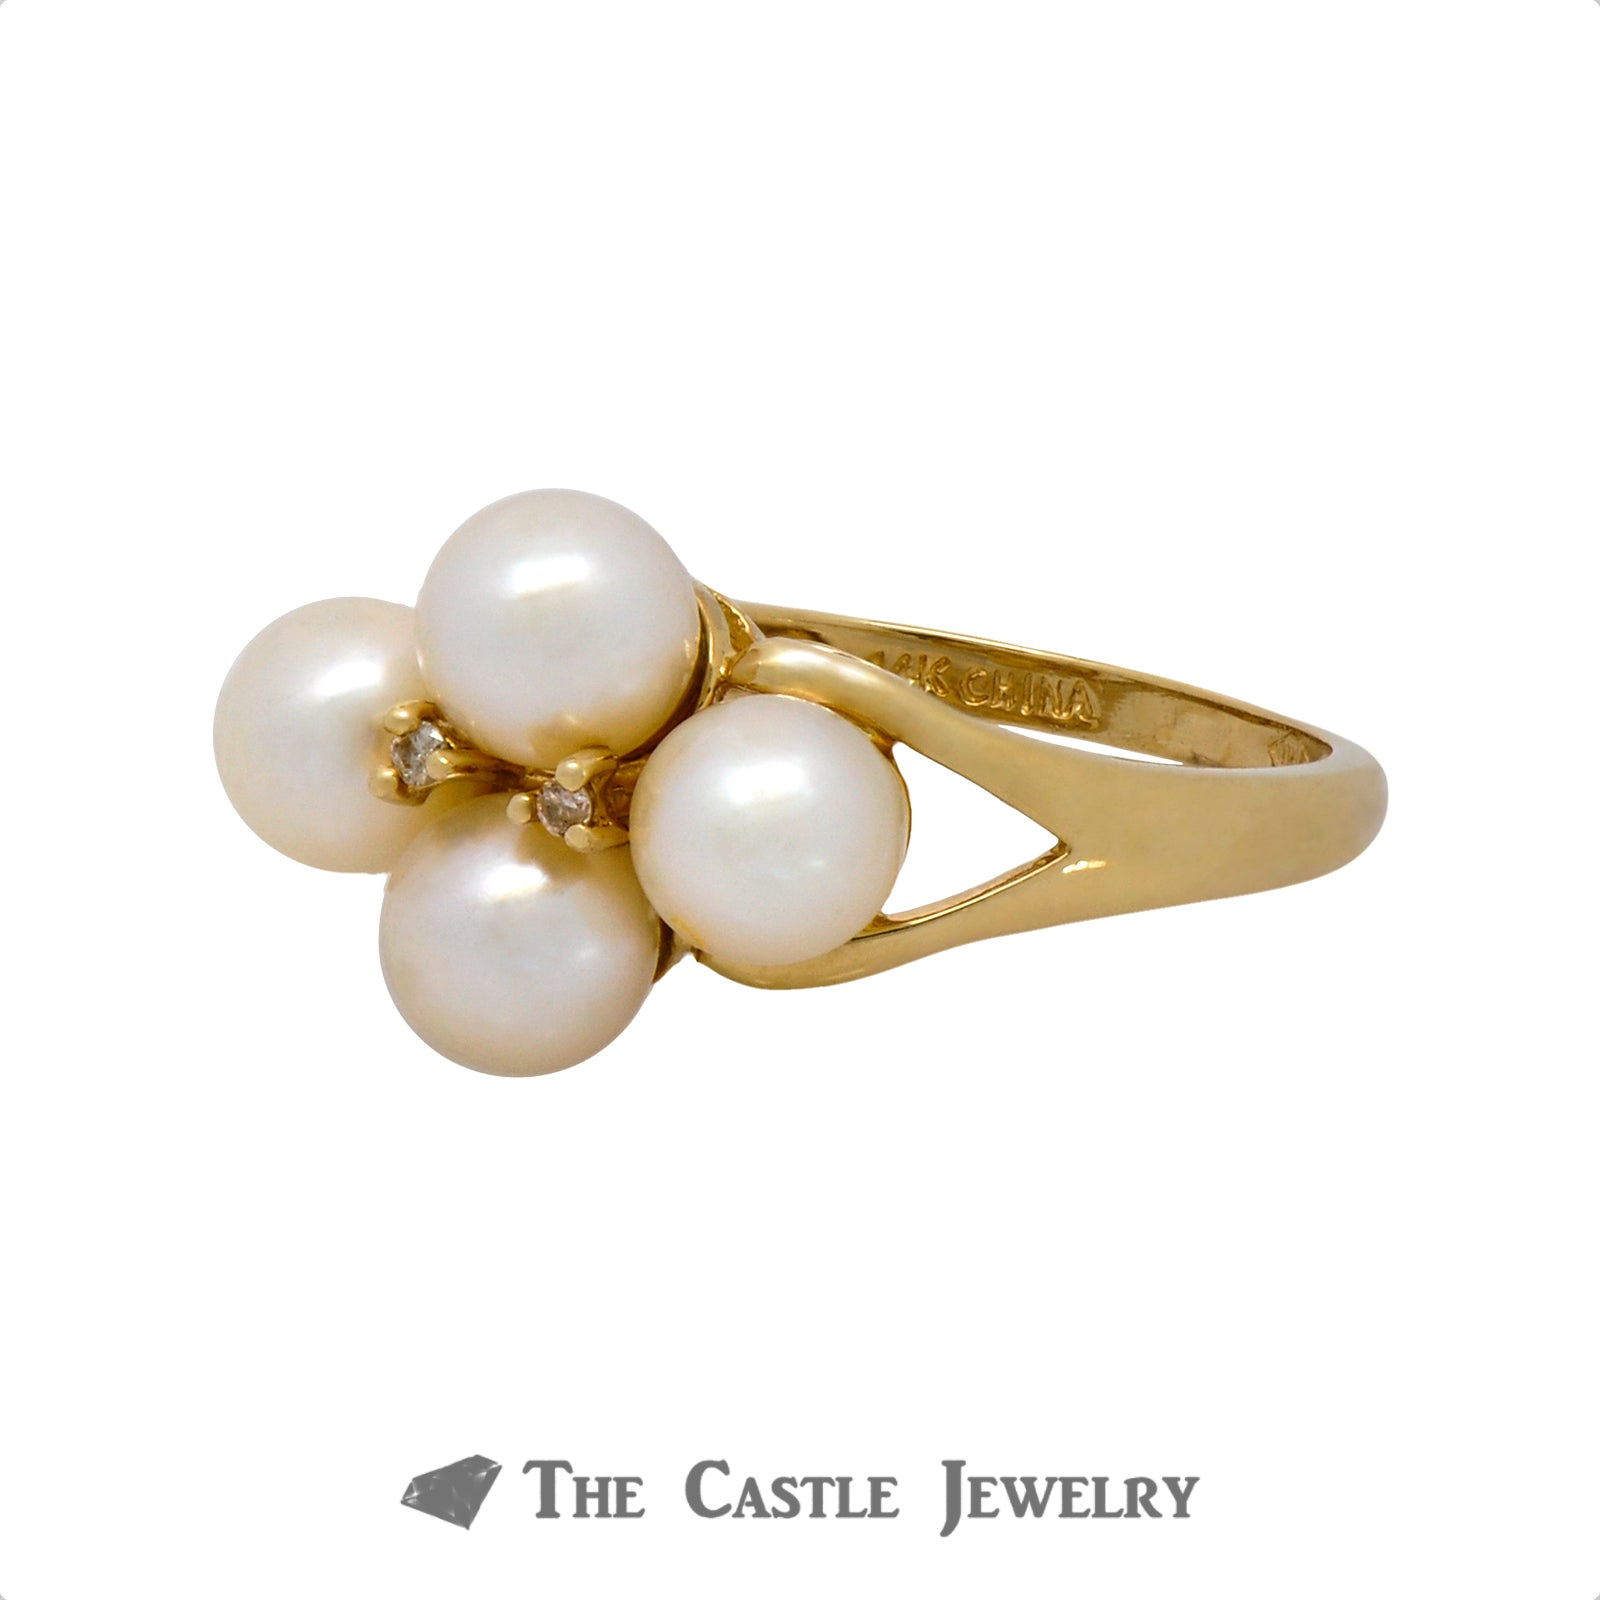 Quadruple 5.5mm Pearl Ring with Diamond Accents Crafted in 14k Yellow Gold